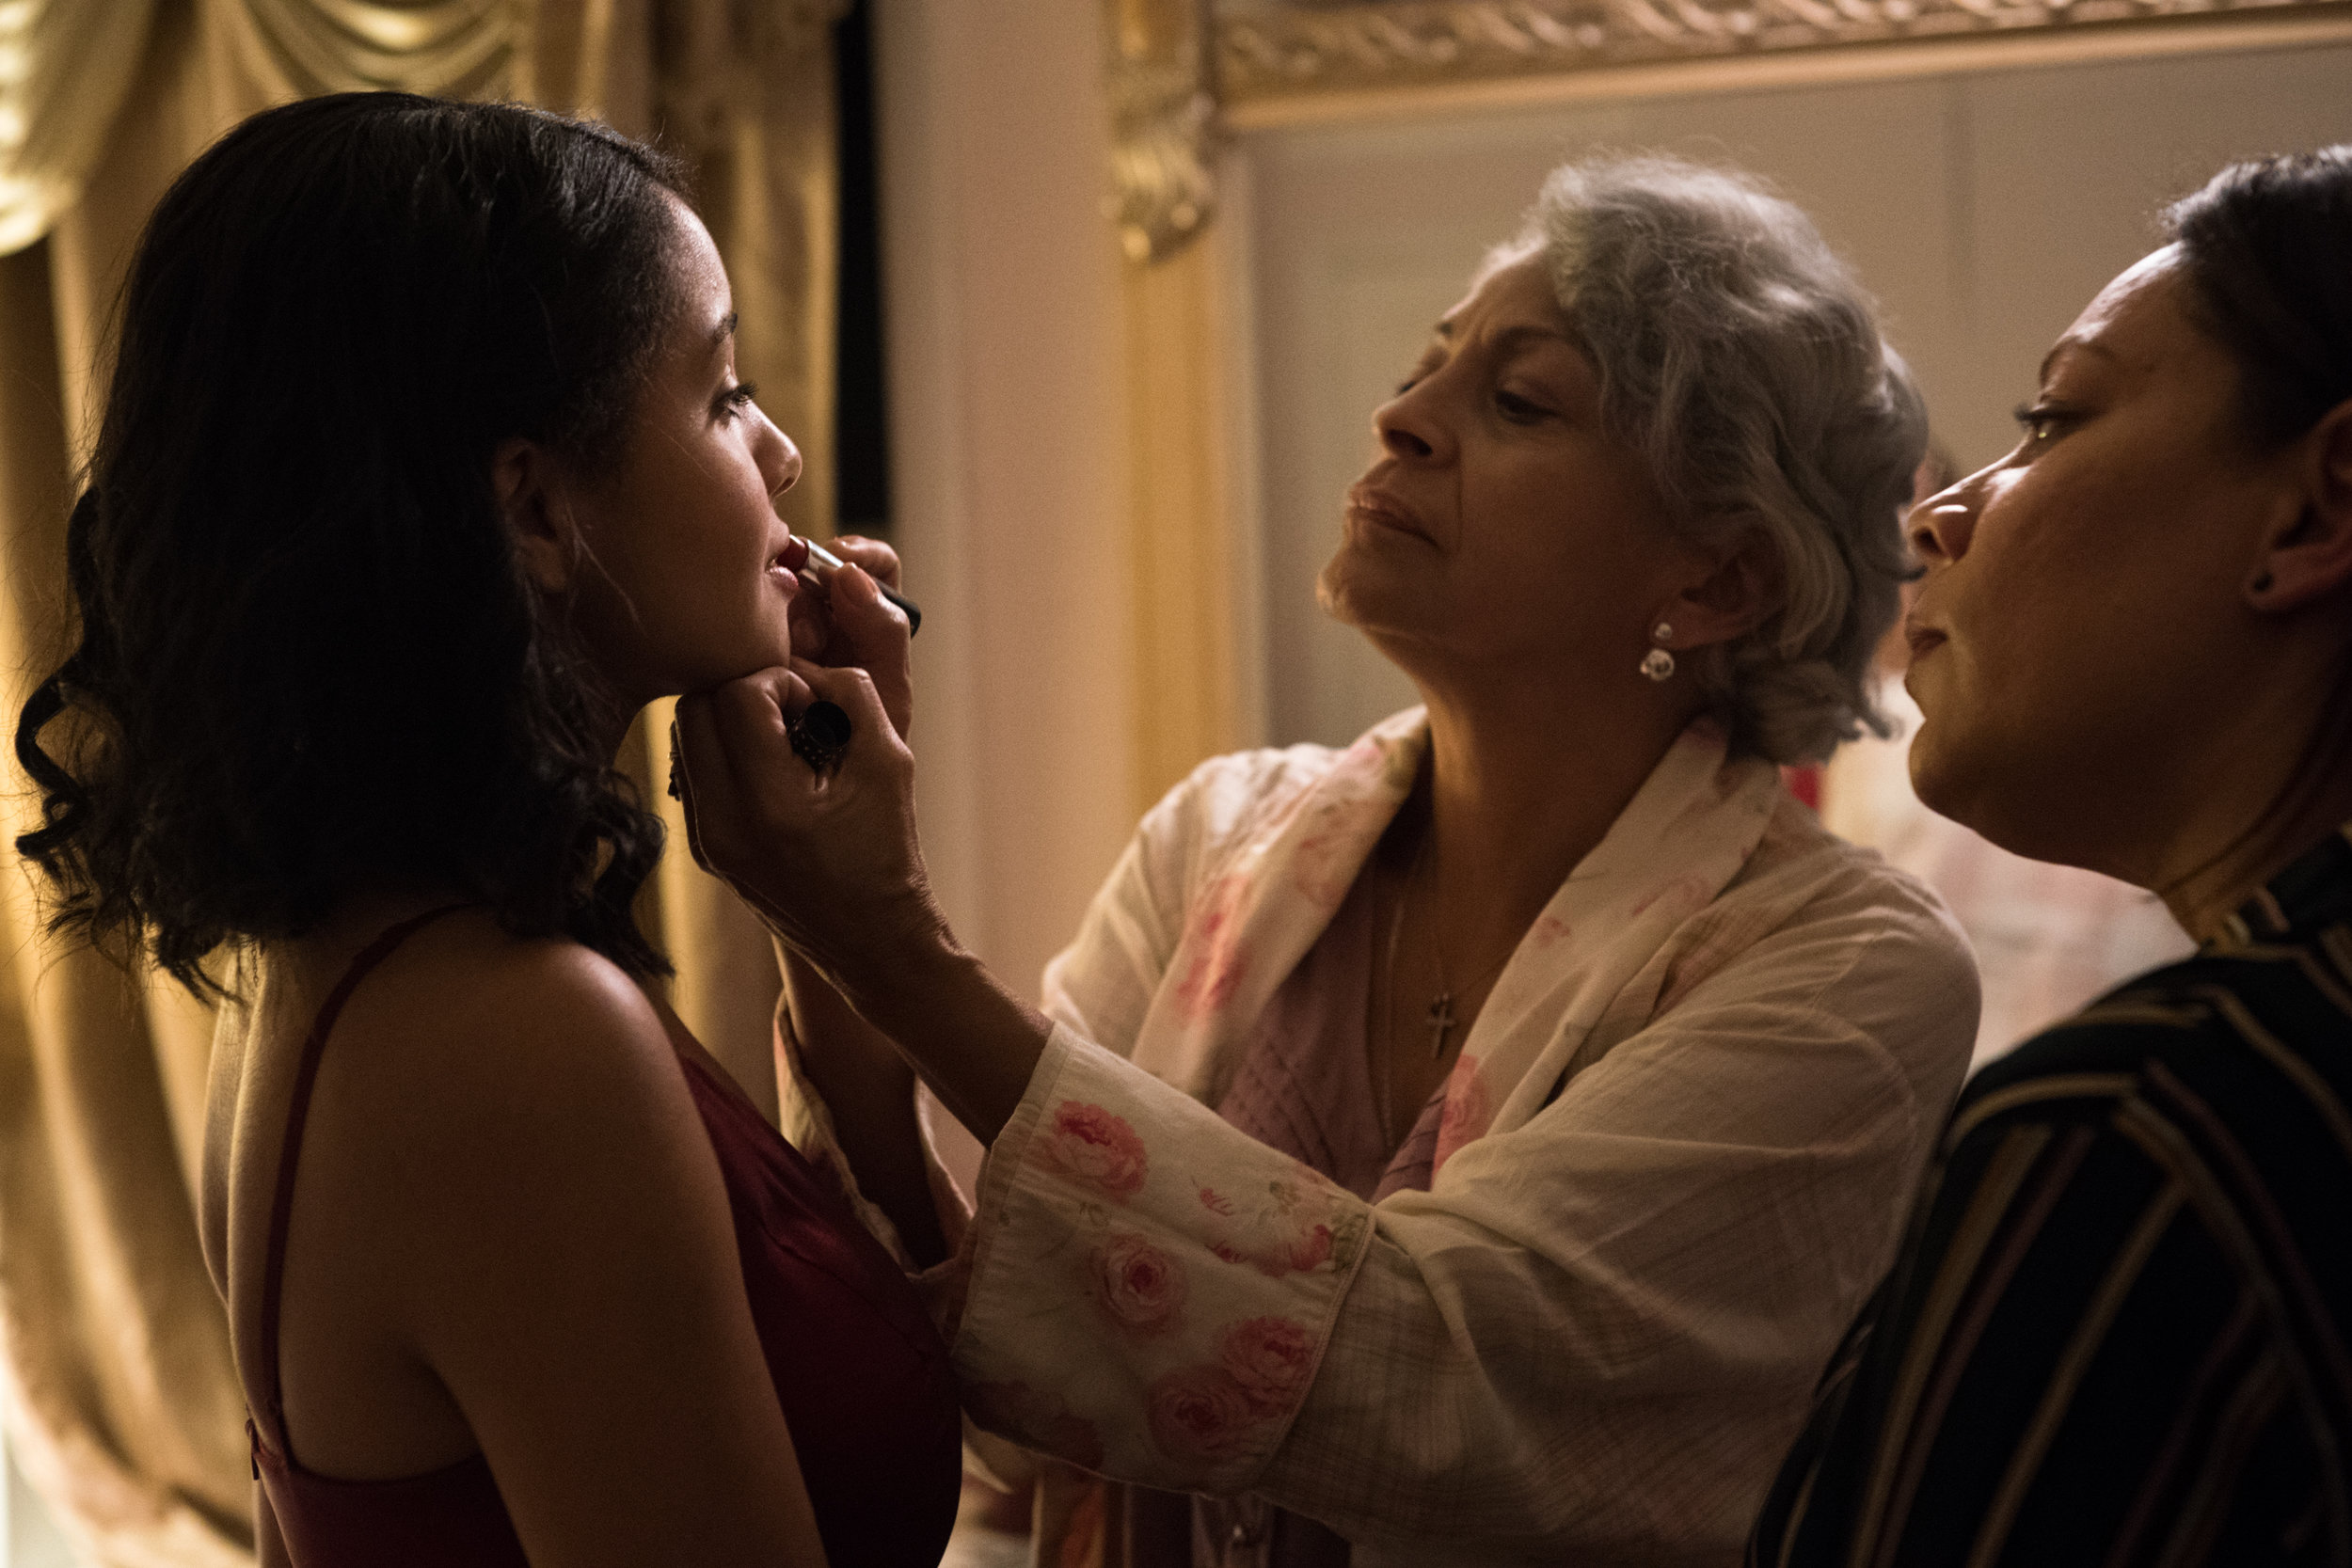 Naya (Crystal de la Cruz) gets a makeover by Mami (Awilda Santana) and Pamela (Selenis Leyva)